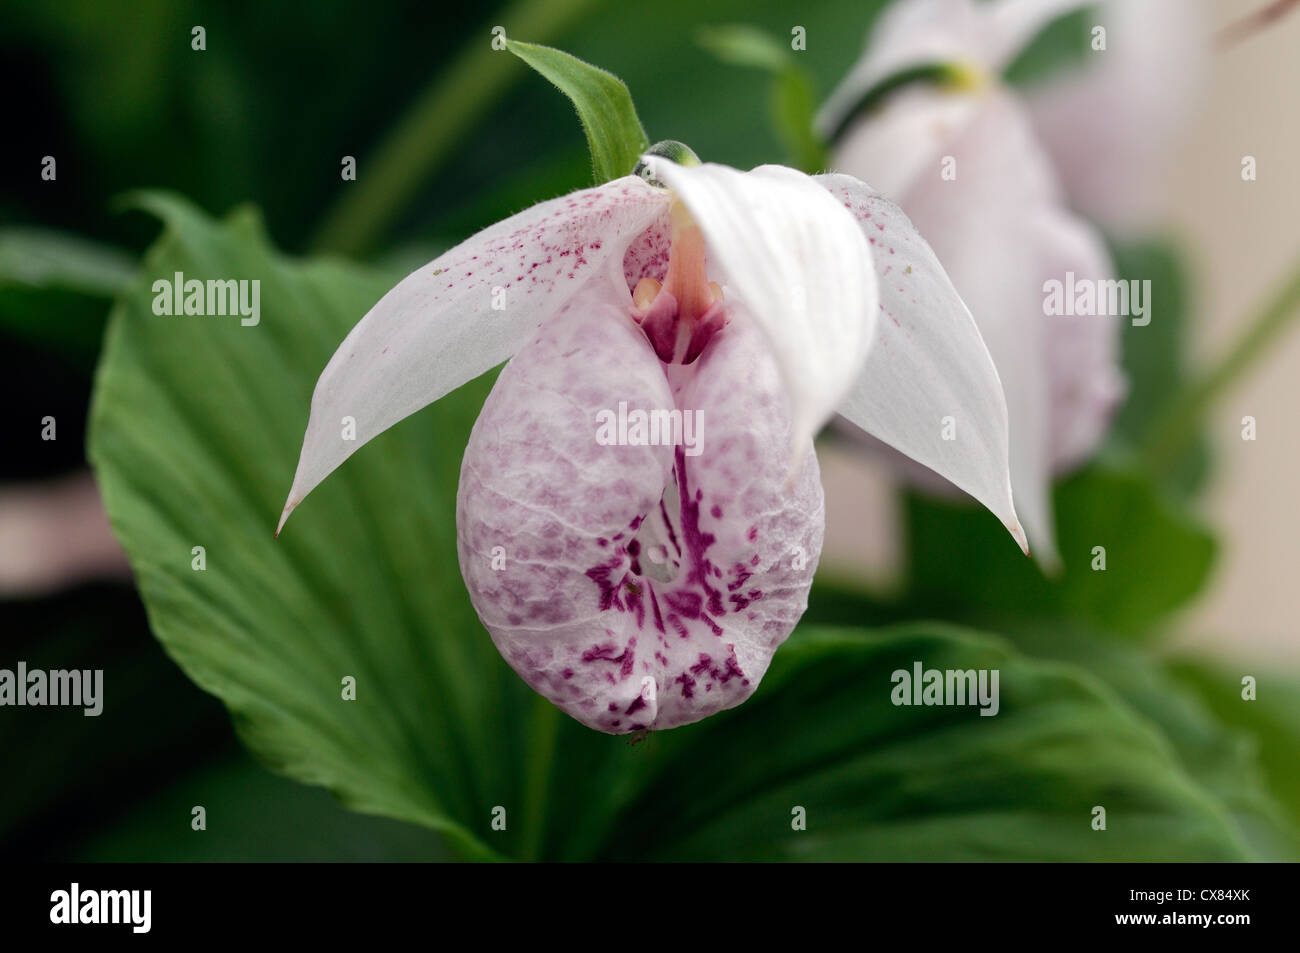 cypripedium formosanum closeups close-ups ups pink flowers flowering blooms colours colors orchids cypripediums - Stock Image